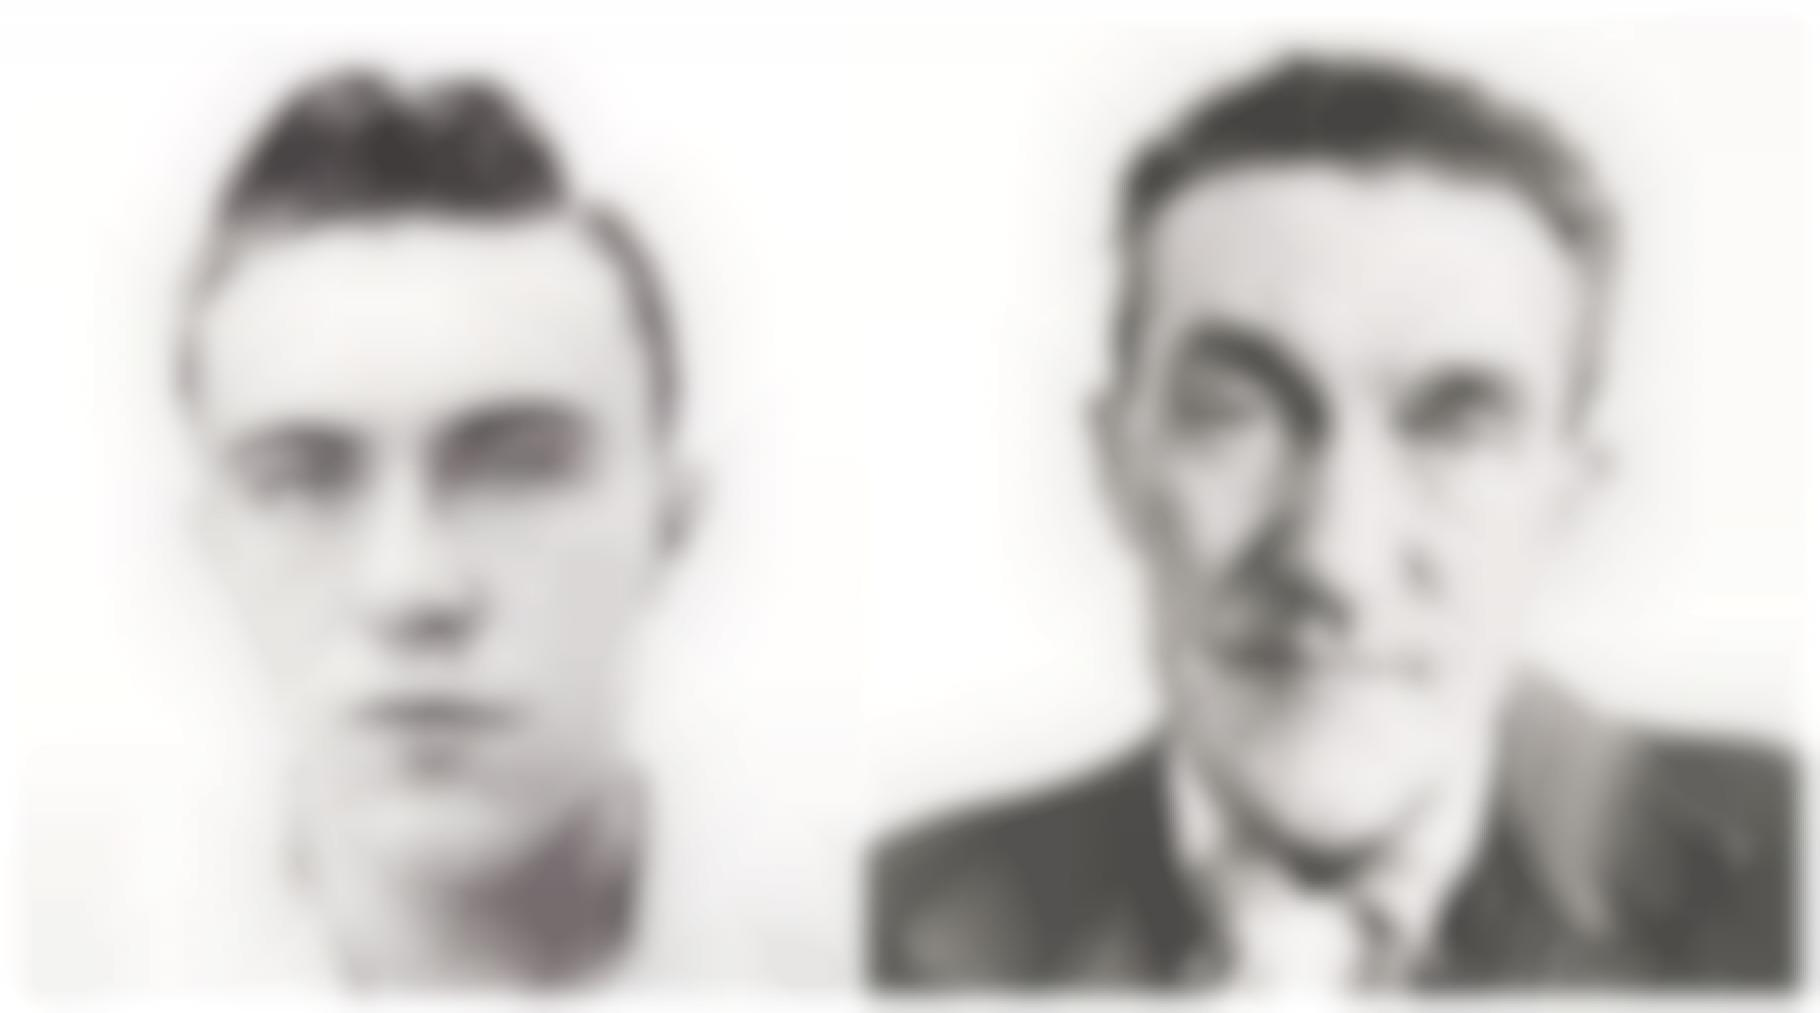 Richard Avedon-Dick Hickock, Murderer, Garden City, Kansas, April 15, 1960 And Walter Hickock, Father Of Dick Hickock, Garden City, Kansas, April 15, 1960-1960